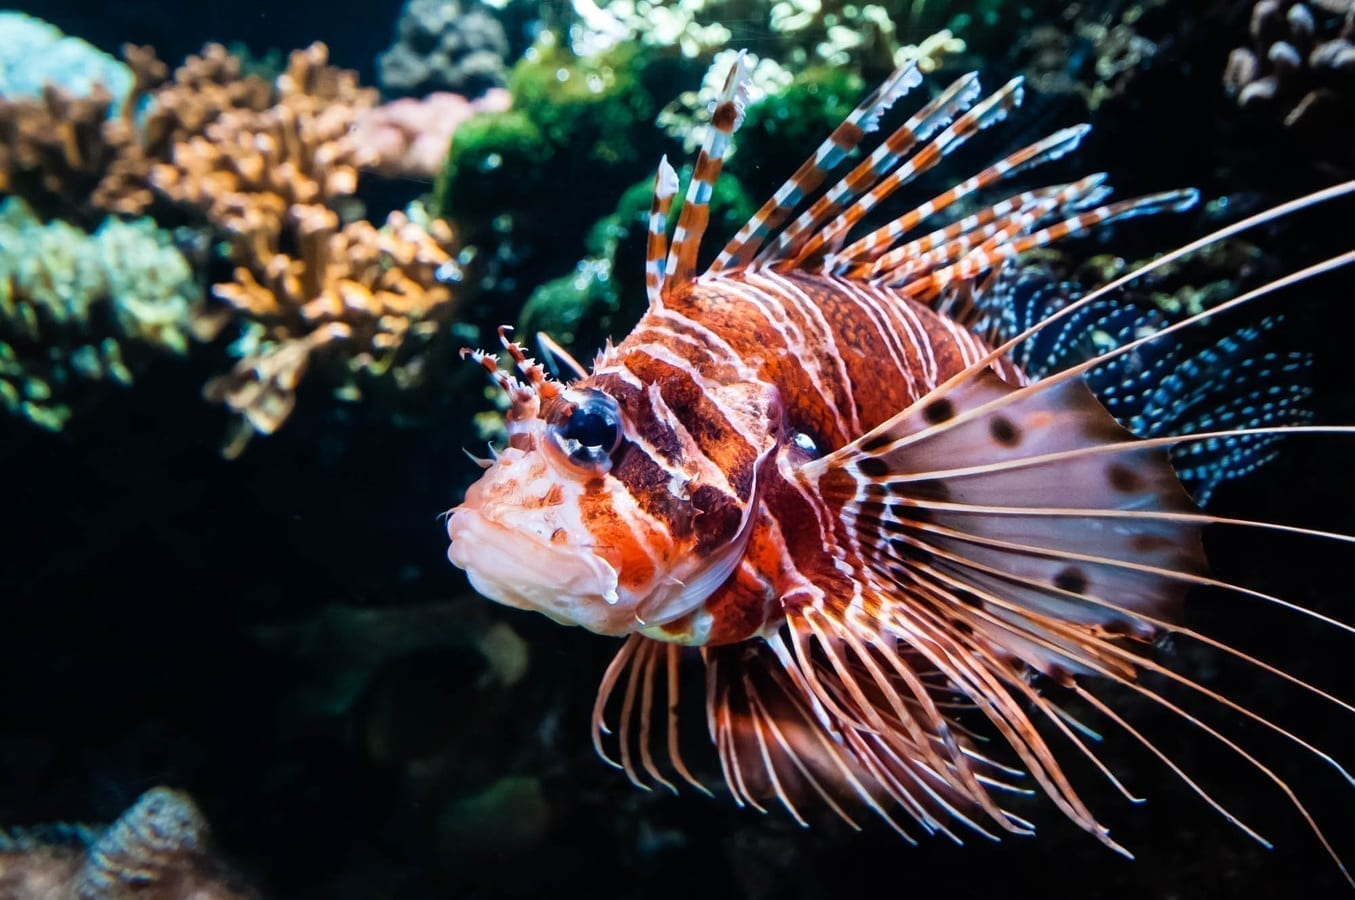 Lionfish in a reef, photo credit: pxhere